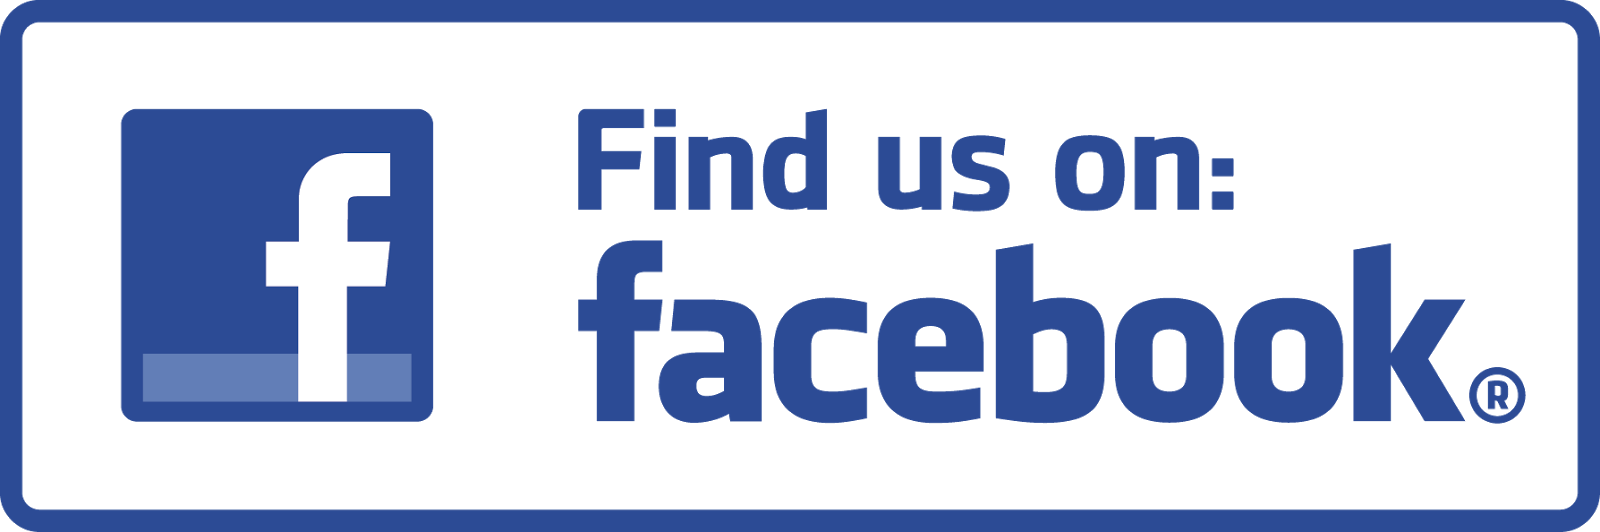 Like our page on Facebook: